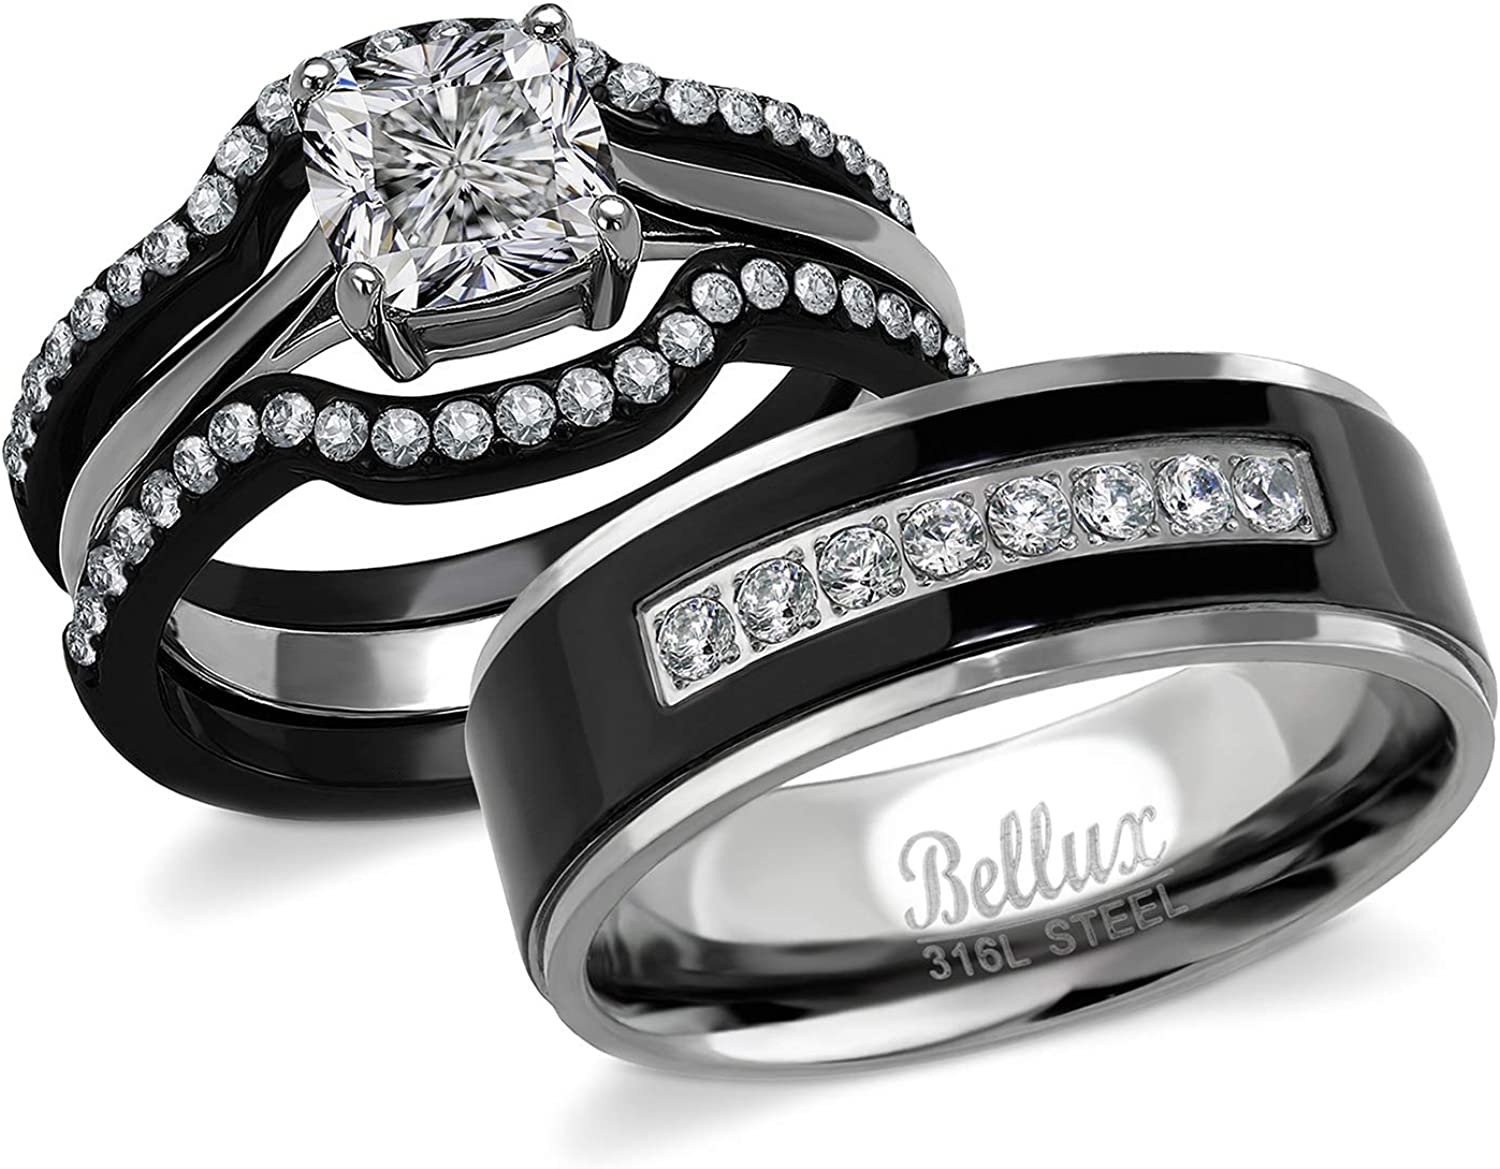 Bellux Style His And Hers Wedding Engagement Promise Rings For